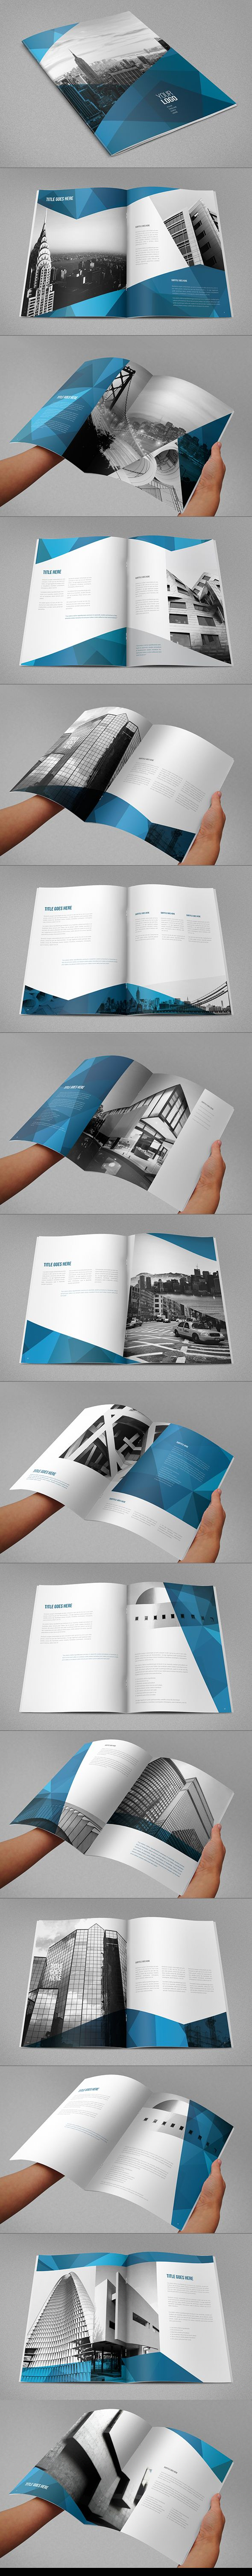 Abstract Architecture Vertical Brochure. Download here: http://graphicriver.net/item/square-colorful-minimal-trifold/9685942?ref=abradesign #brochure #template #design